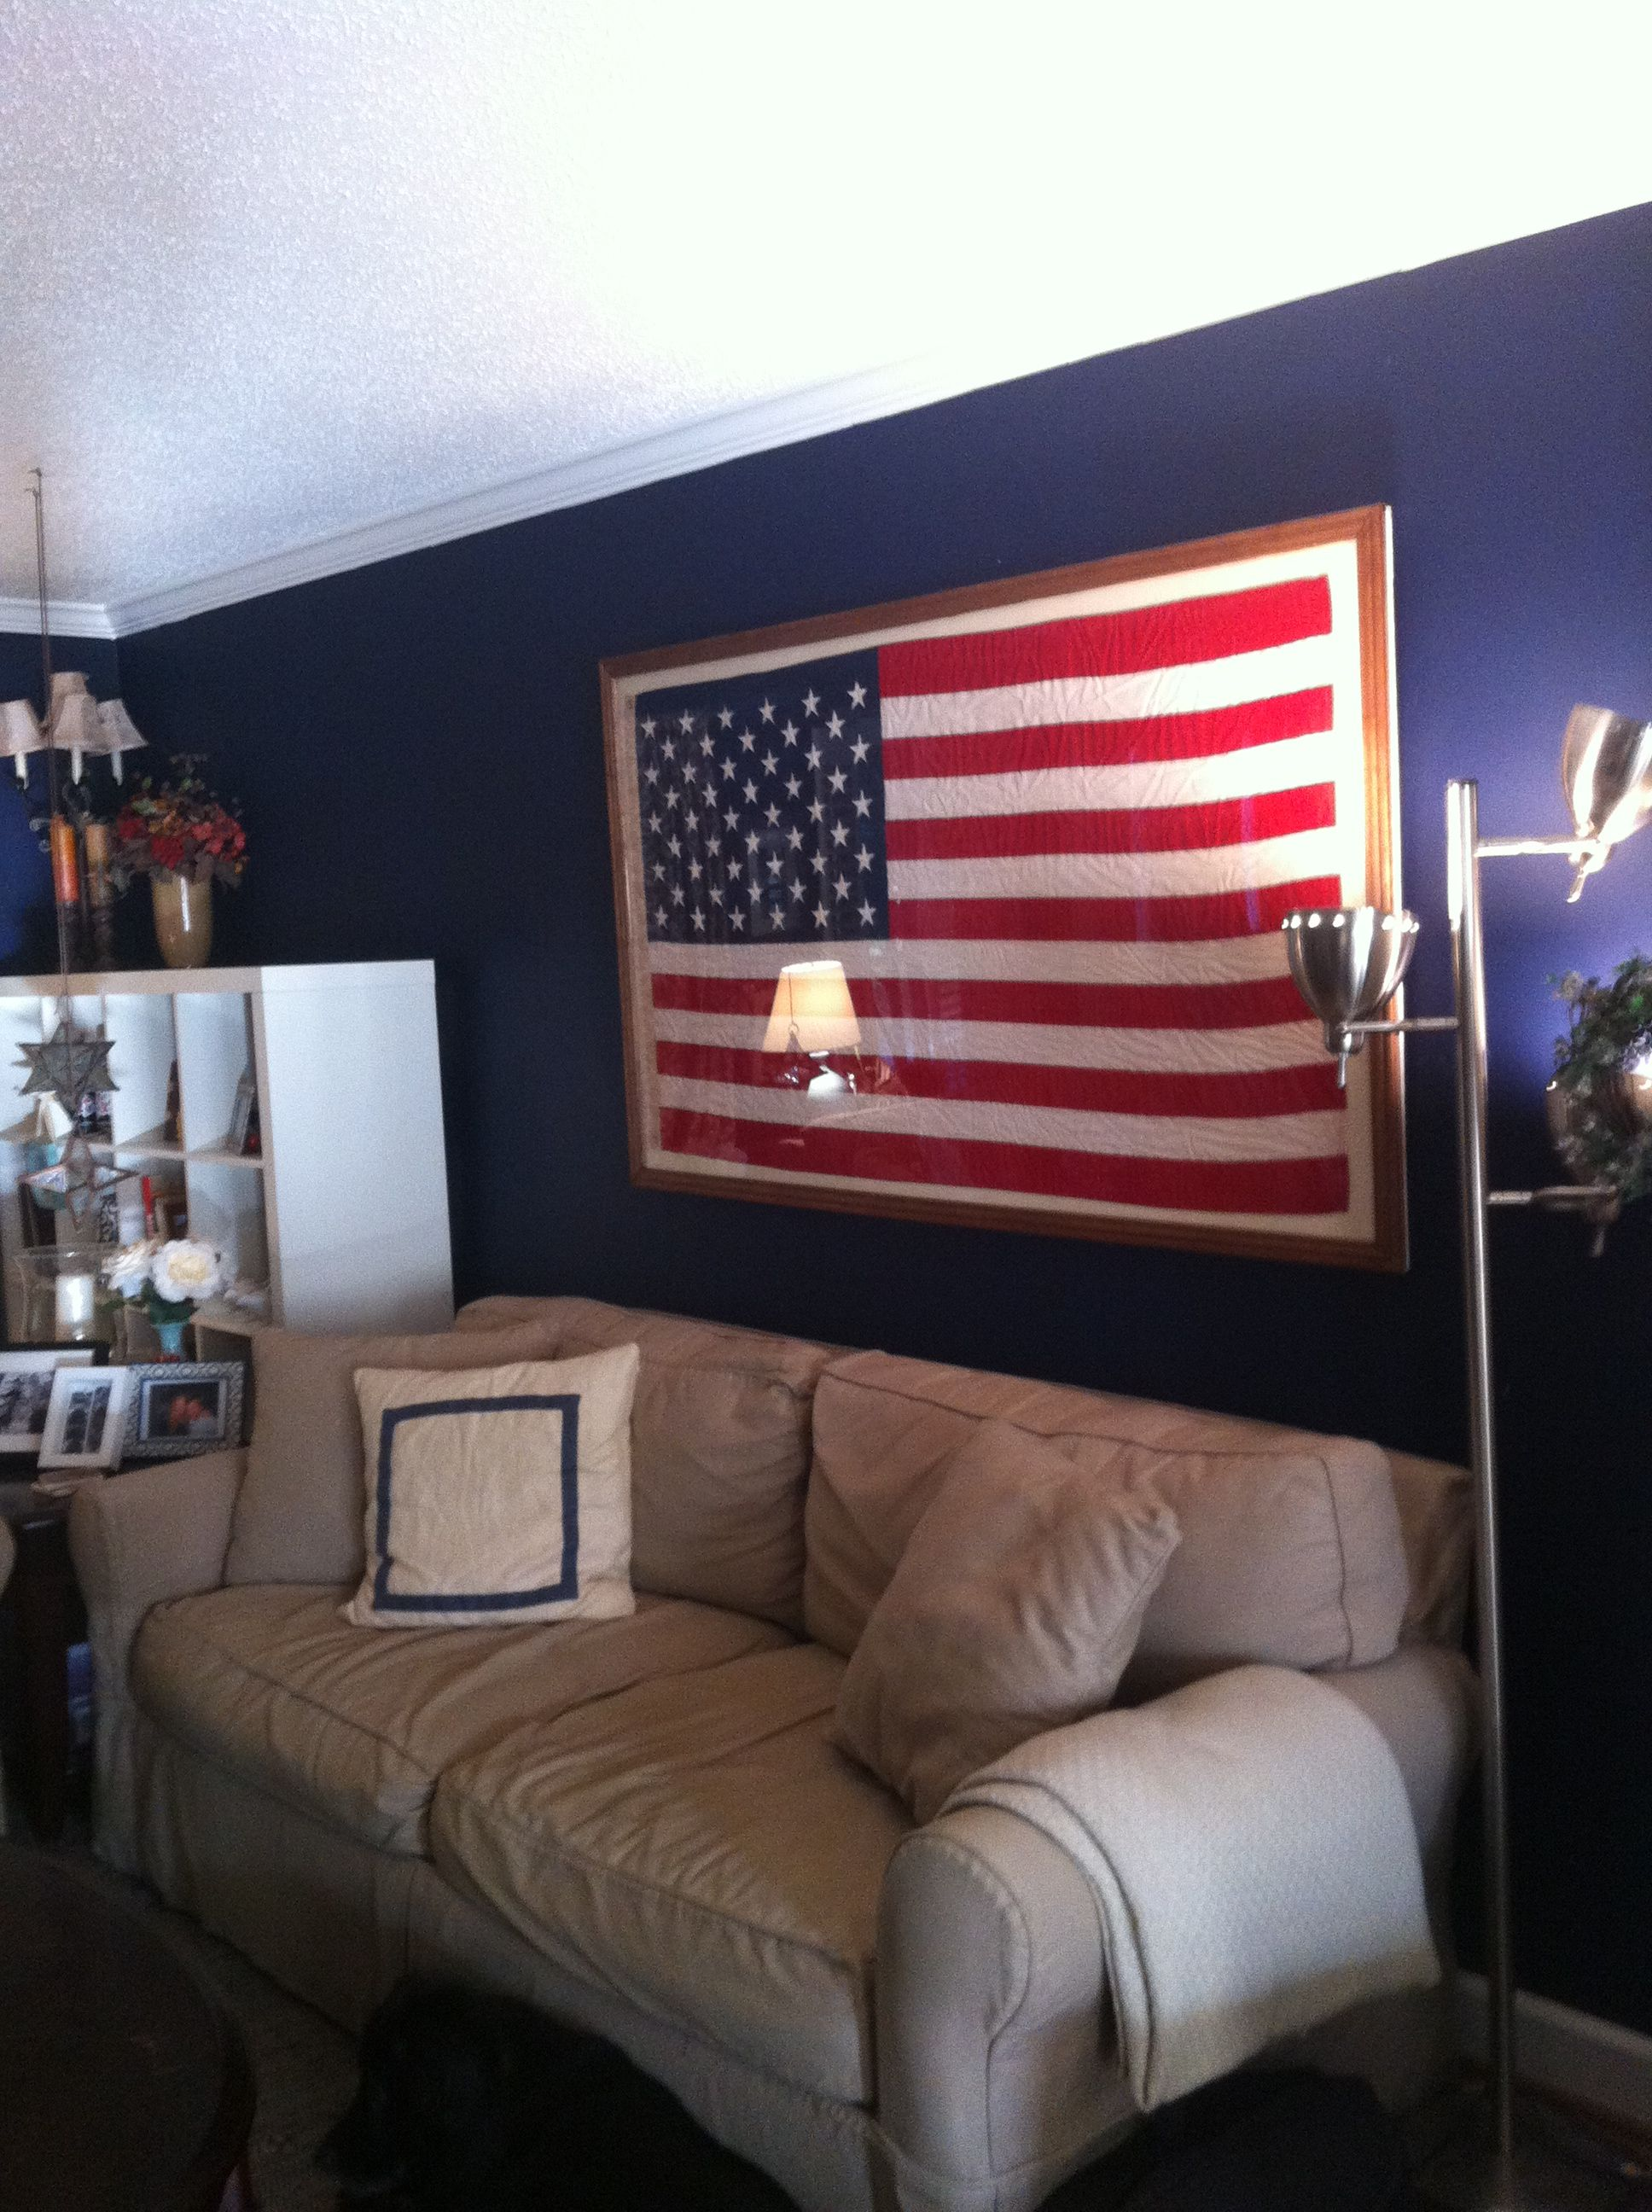 Framed American Flag Michaels Wanted 750 To Frame It But I Built A Frame Out Of Plywood And Plexi Glass For 1 Home Decor Framed American Flag Blue Playroom